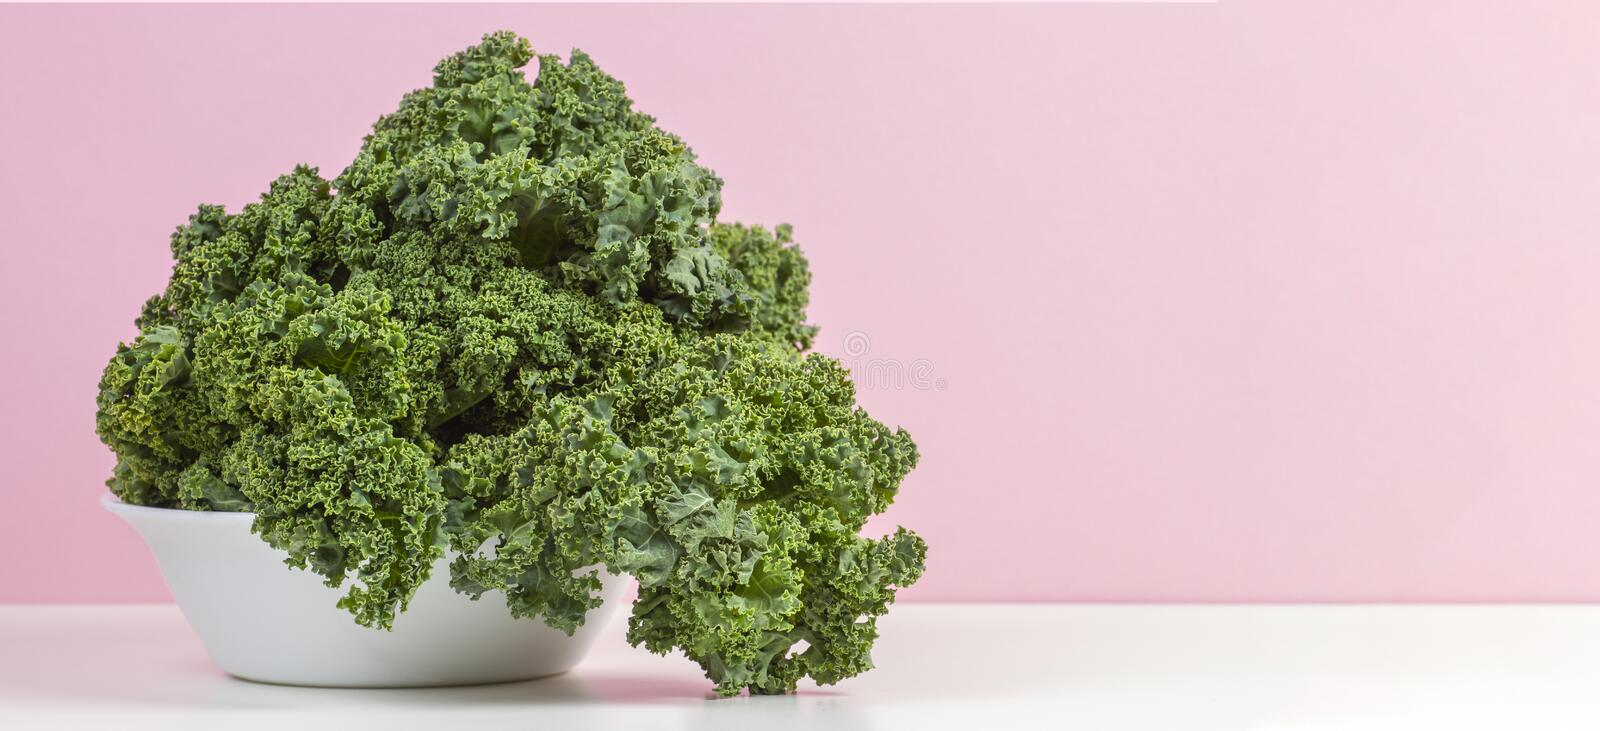 Fresh raw organic green curly kale leaves of kale on white plate with pink background royalty free stock images